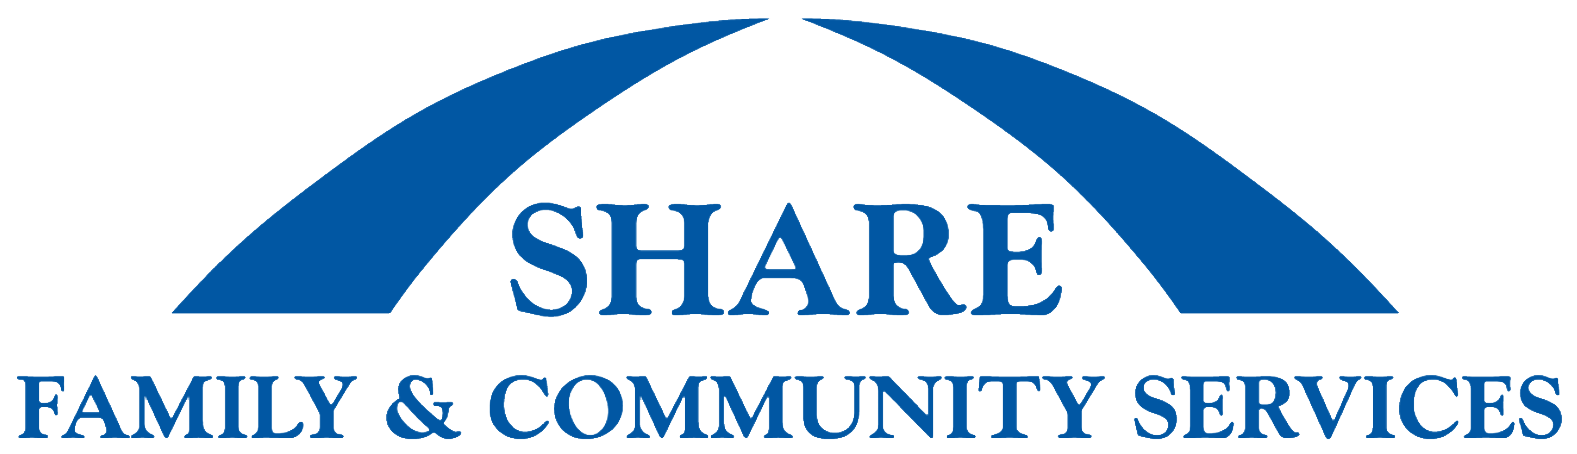 share-society-logo